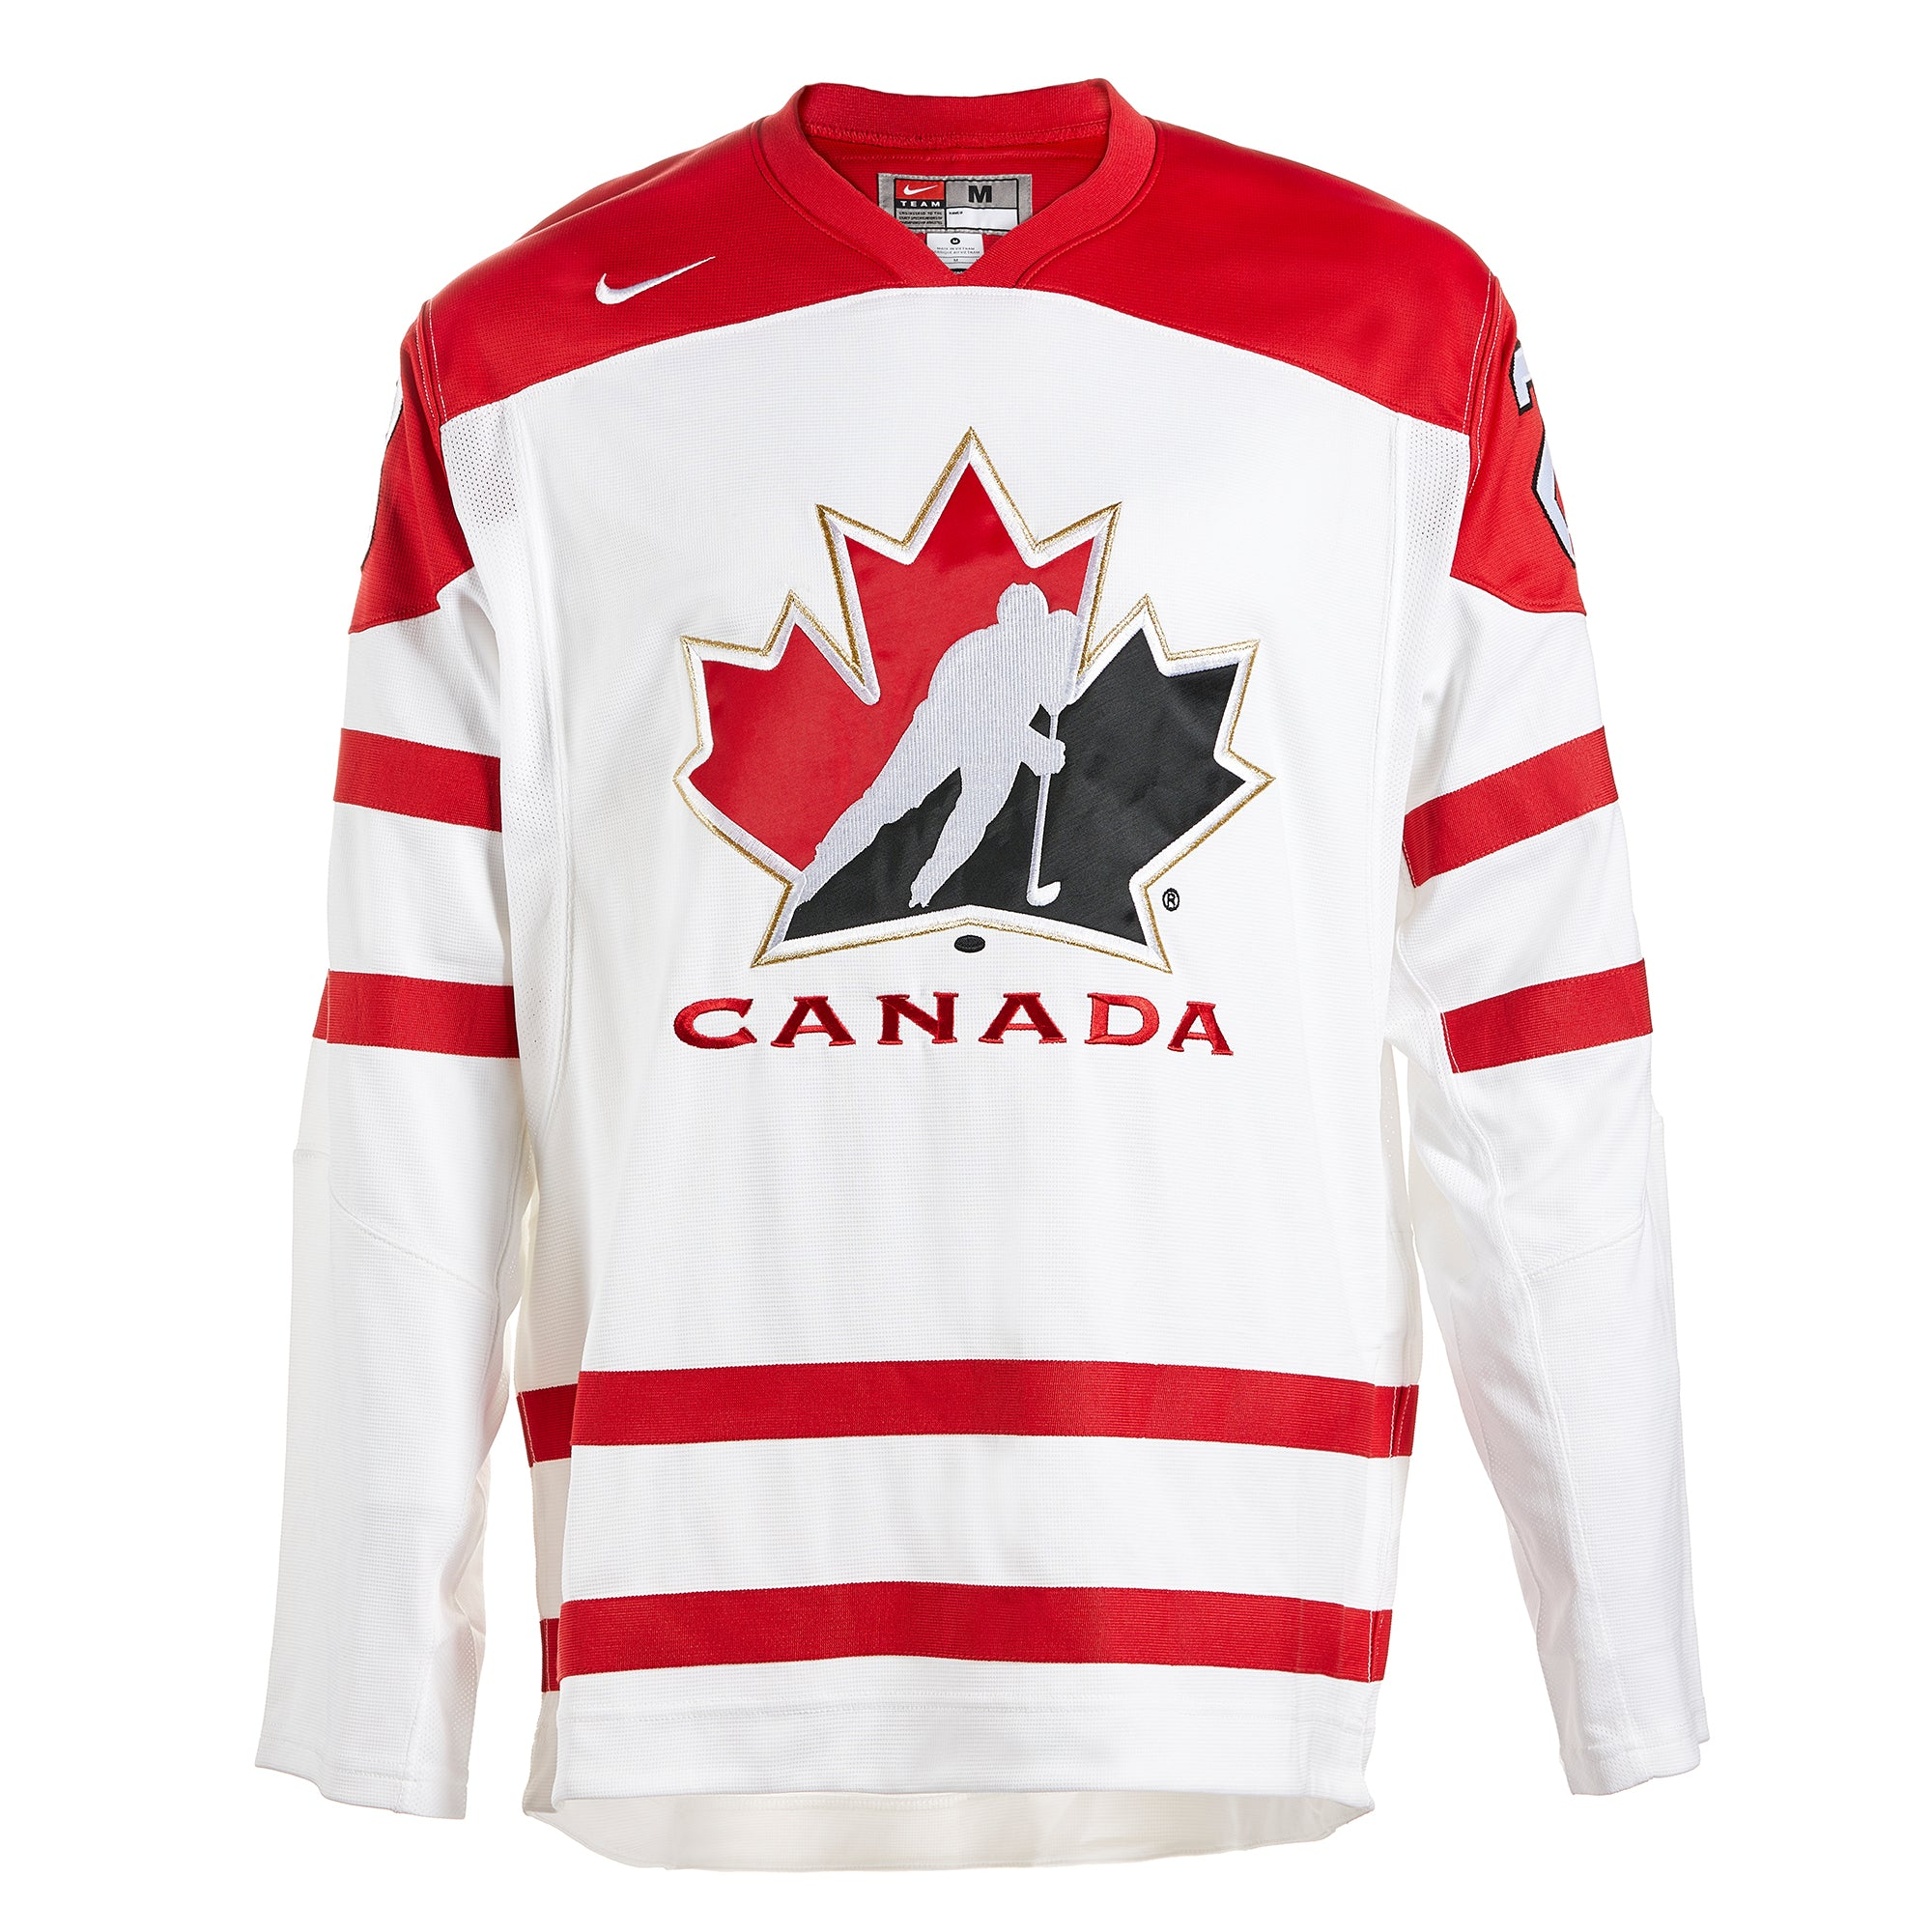 Nathan MacKinnon Team Canada Autographed White Nike World Junior Hockey Jersey - Size MED